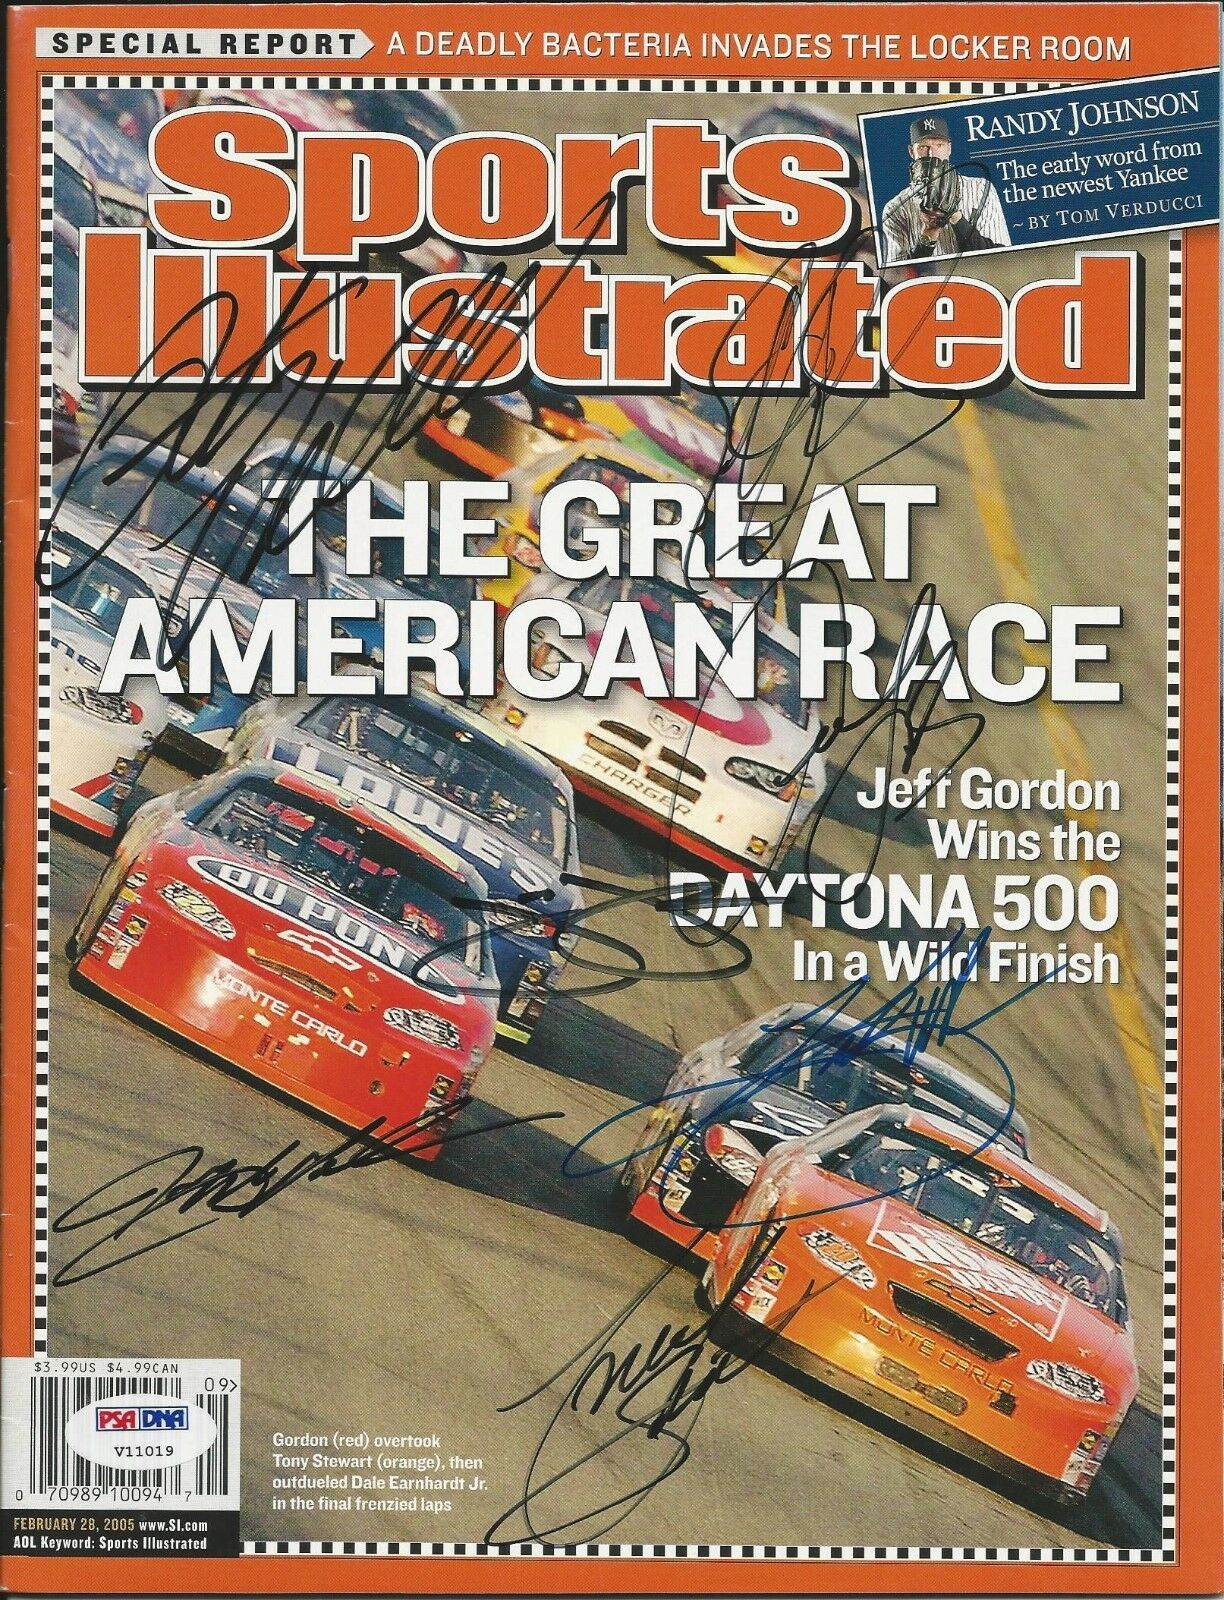 Sports Illistrated: The Great American Race signed PSA/DNA #V11019